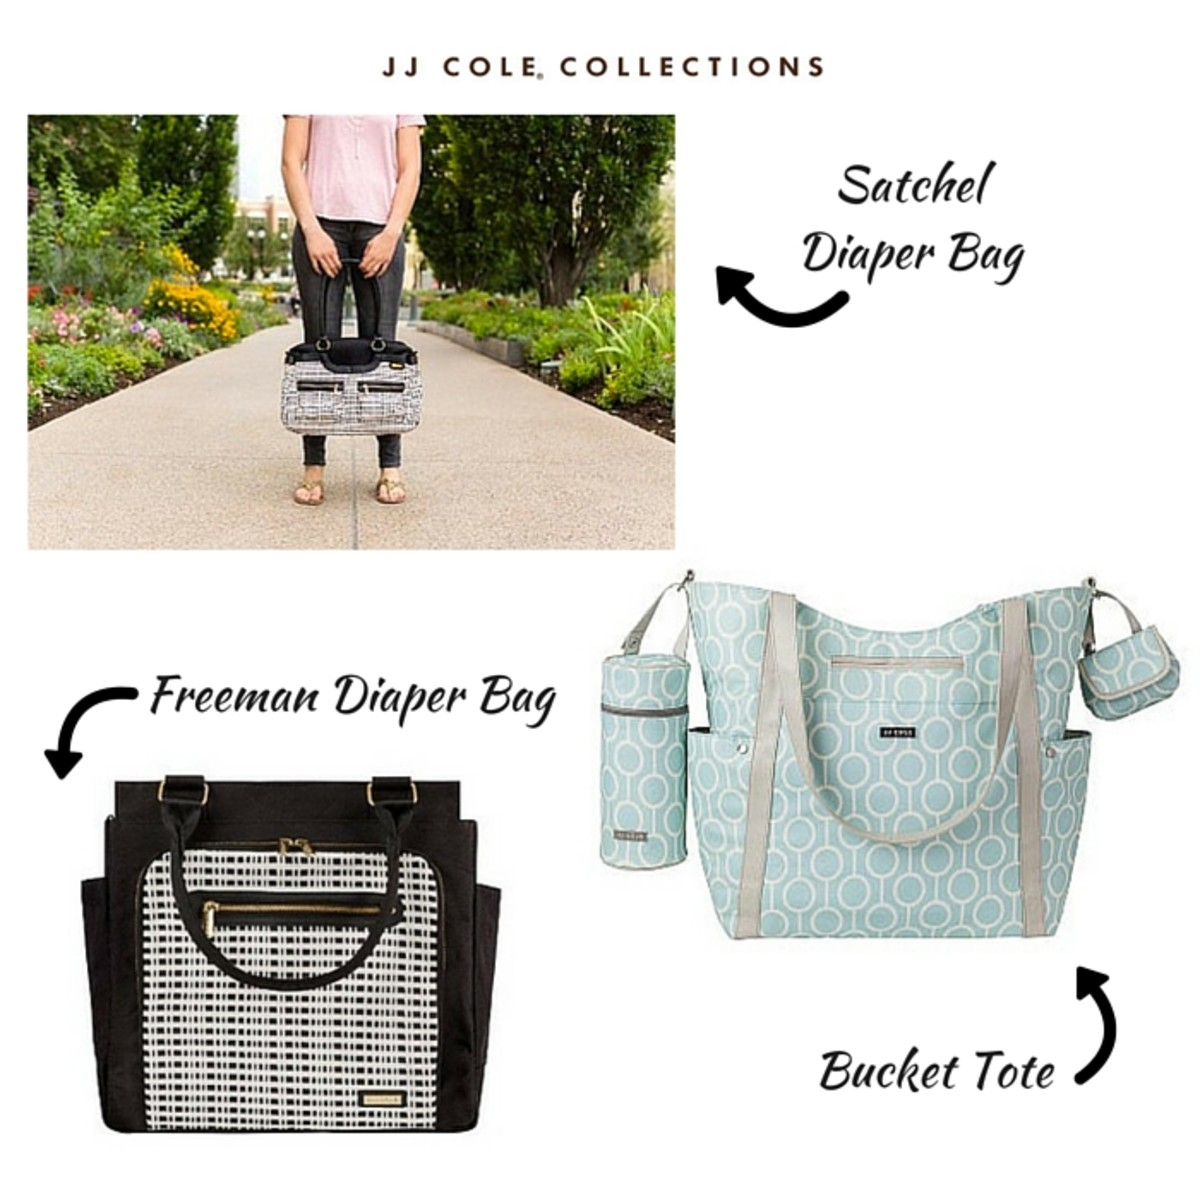 Freeman Diaper Bag(1)